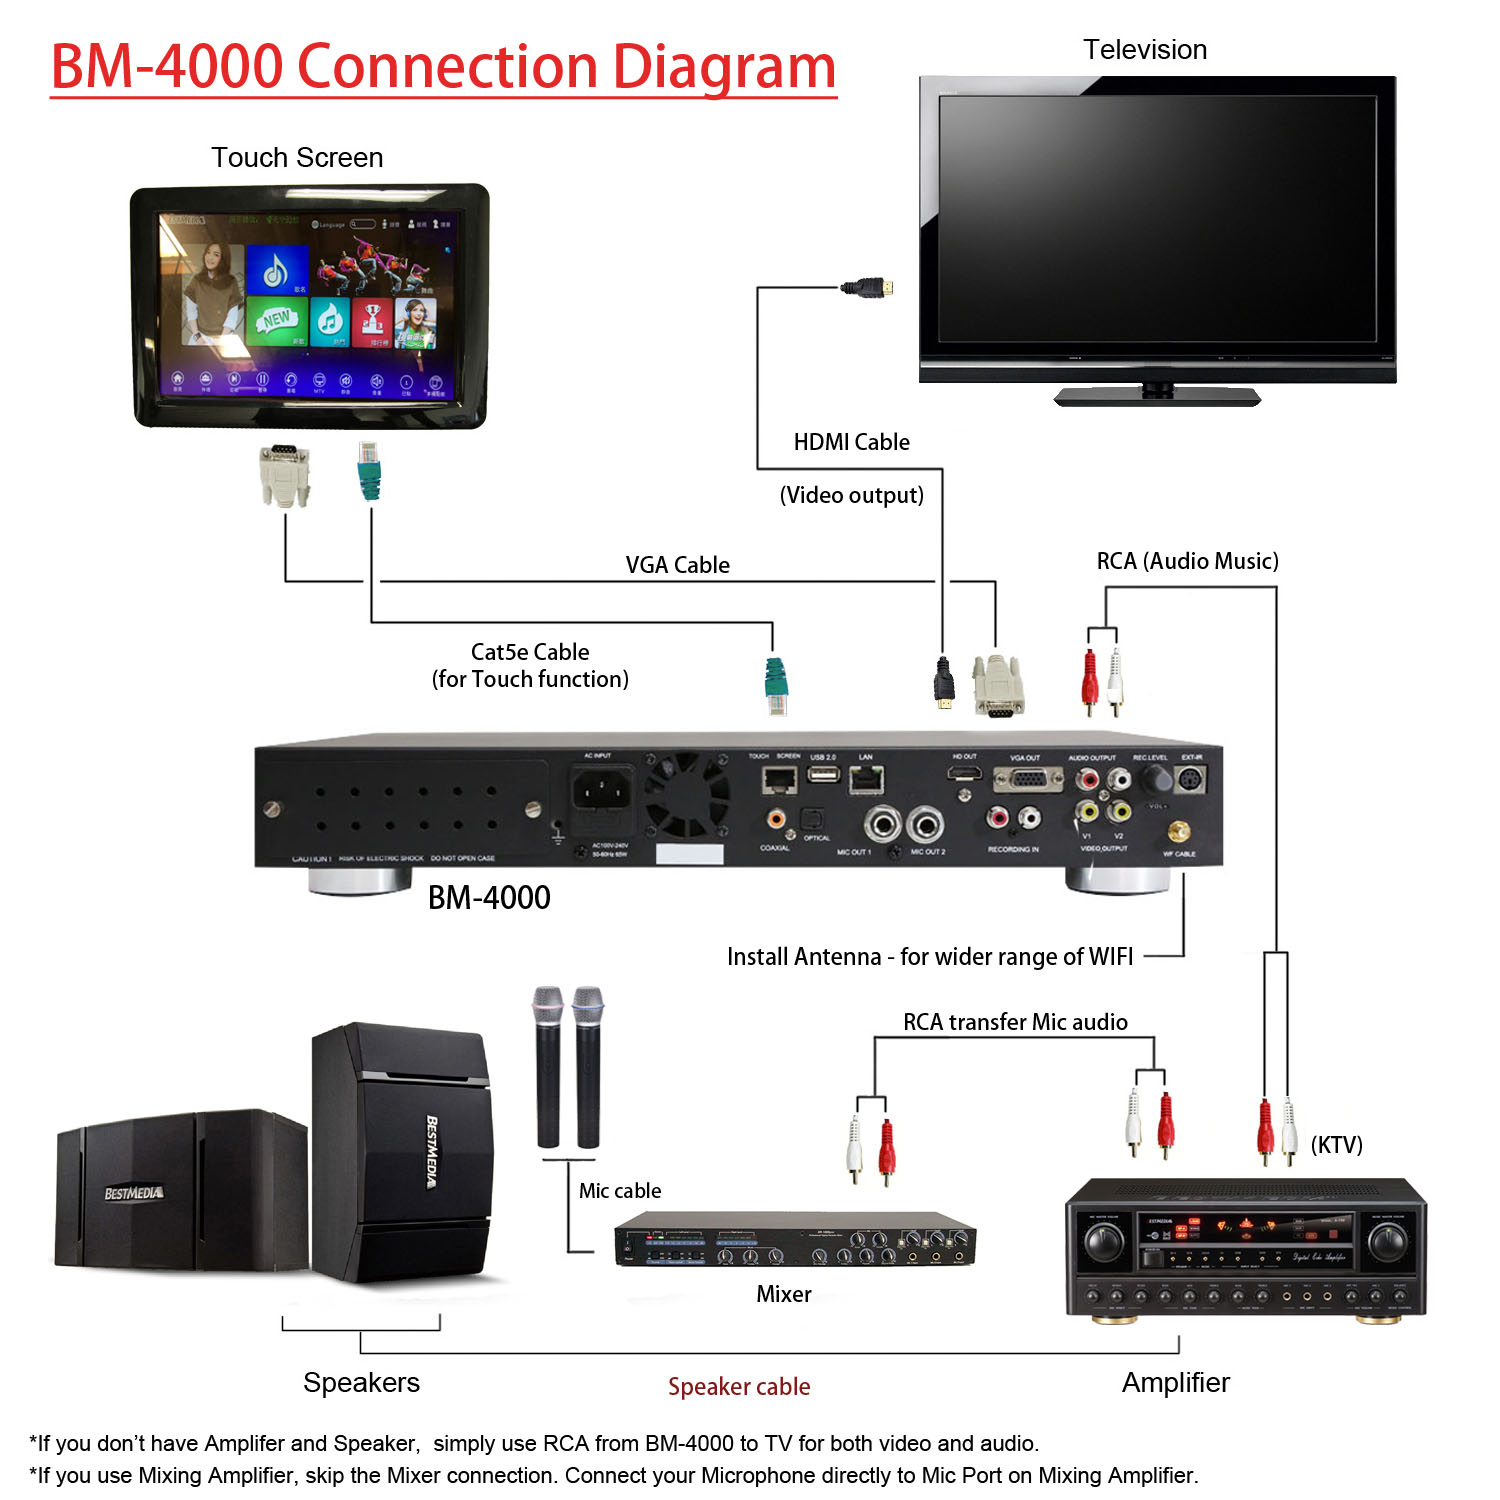 Hdmi Cable Amplifier Wiring Diagram Diagrams Rs232 Test Circuit Tradeoficcom Bm 4000 Connection Best Media Tech Support Rh Bmkaraoke Wordpress Com Layout